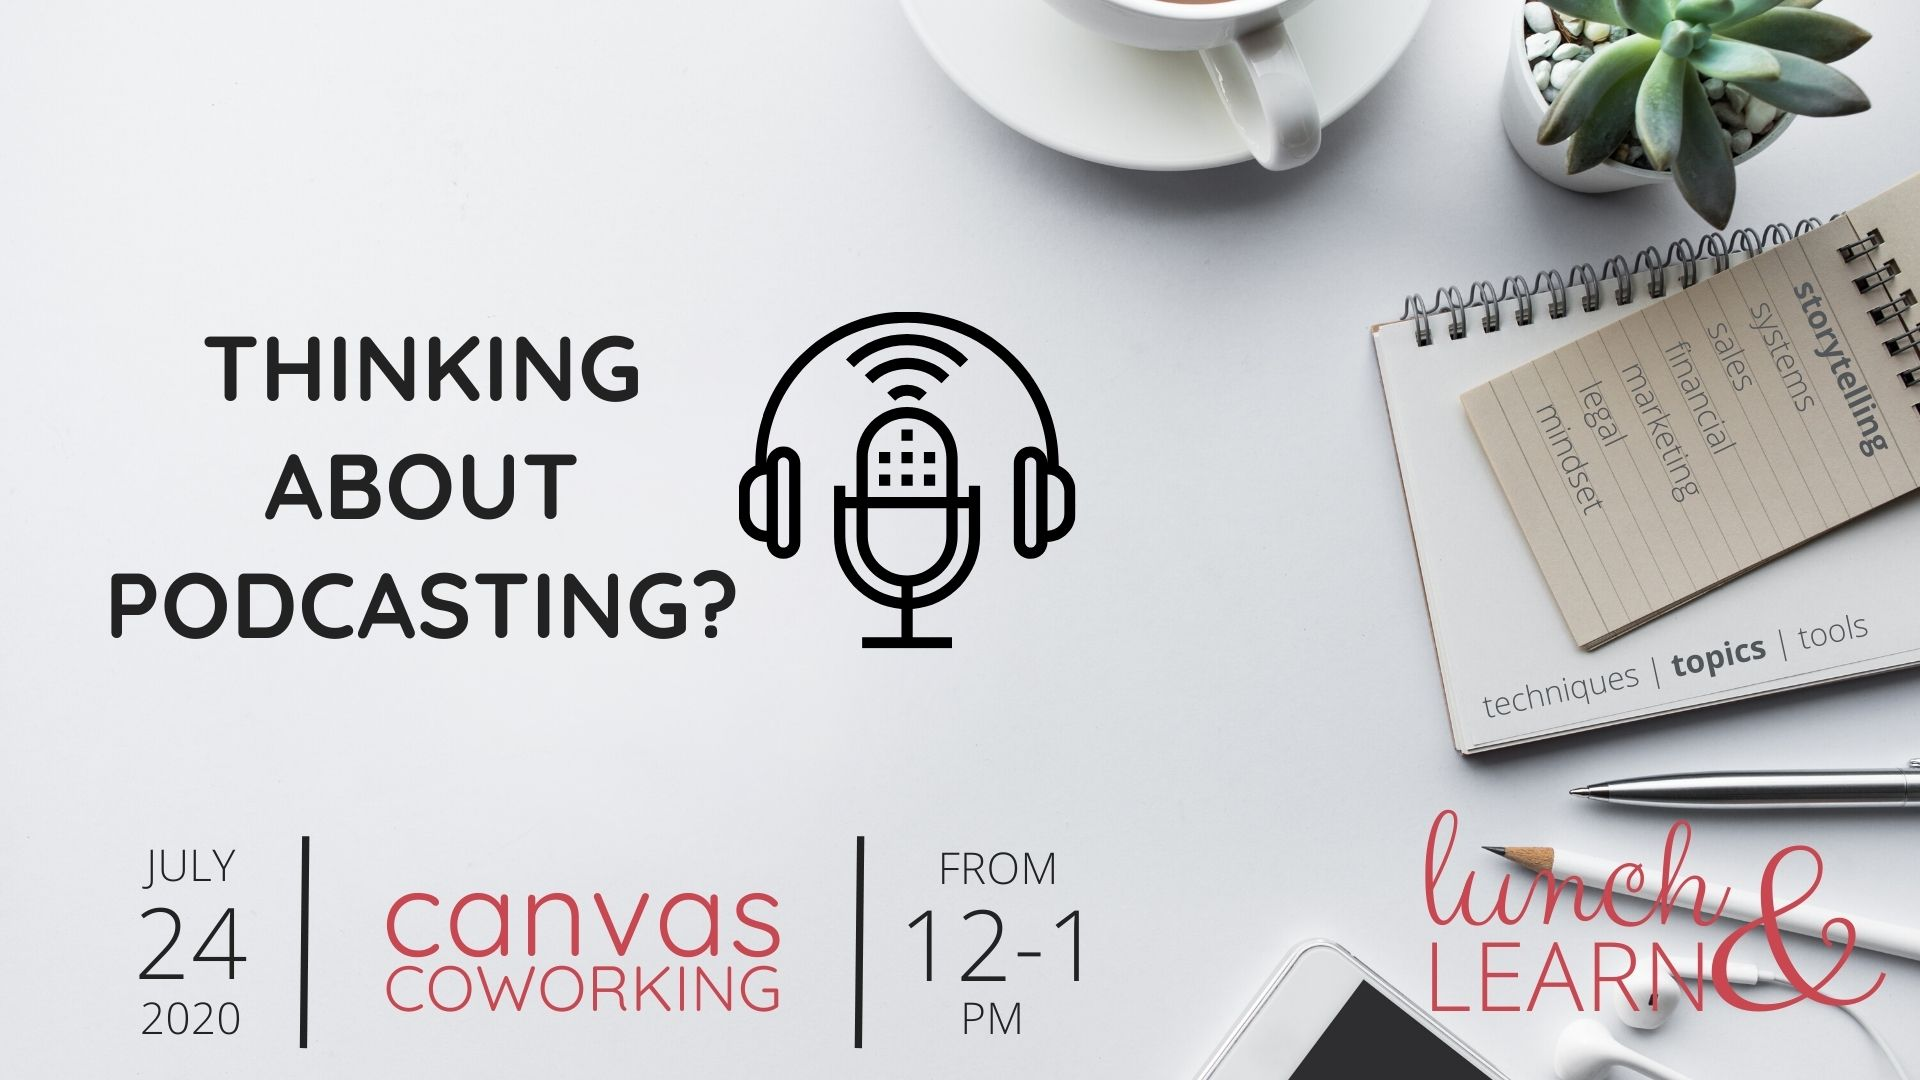 Thinking about podcasting? Lunch & Learn Friday 24 July 2020 at 12pm Canvas Coworking Toowoomba